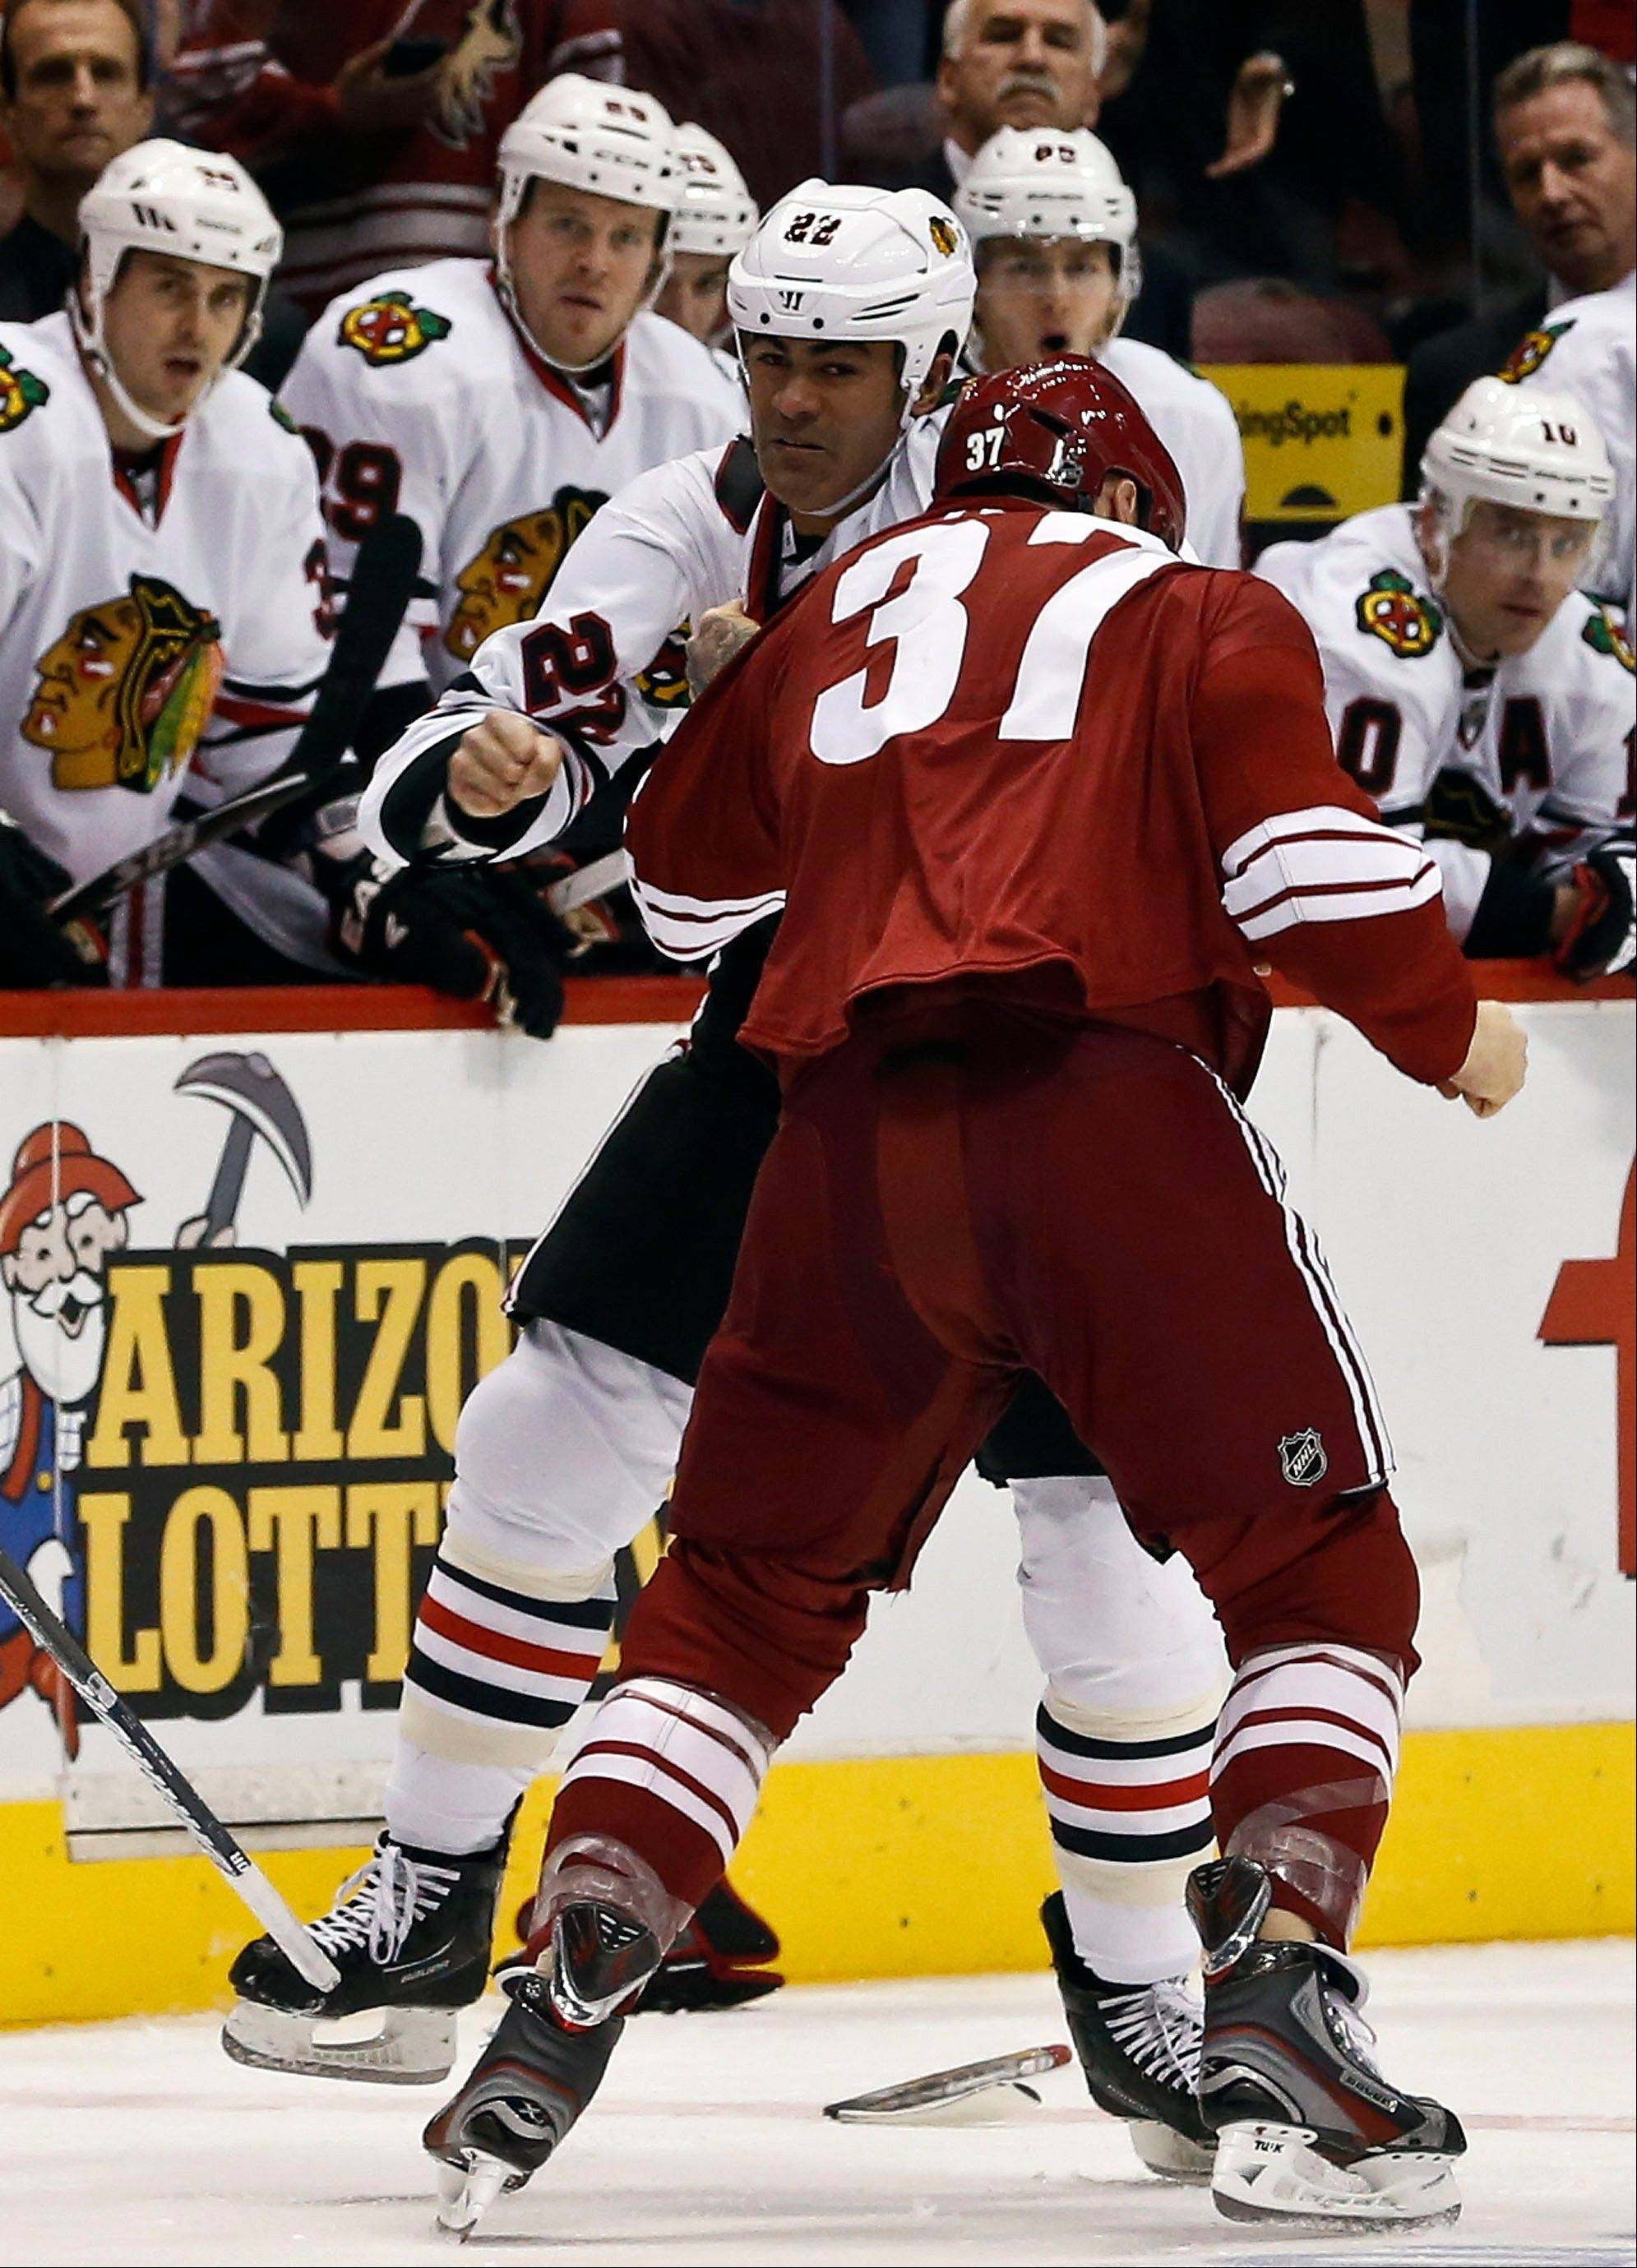 "Phoenix Coyotes' Raffi Torres (37) fights with Jamal Mayers of the Blackhawks early in the first period of Thursday night's game in Glendale, Ariz. Patrick Kane said the fights ""pumped up"" the Hawks, who went on to claim a 6-2 win."